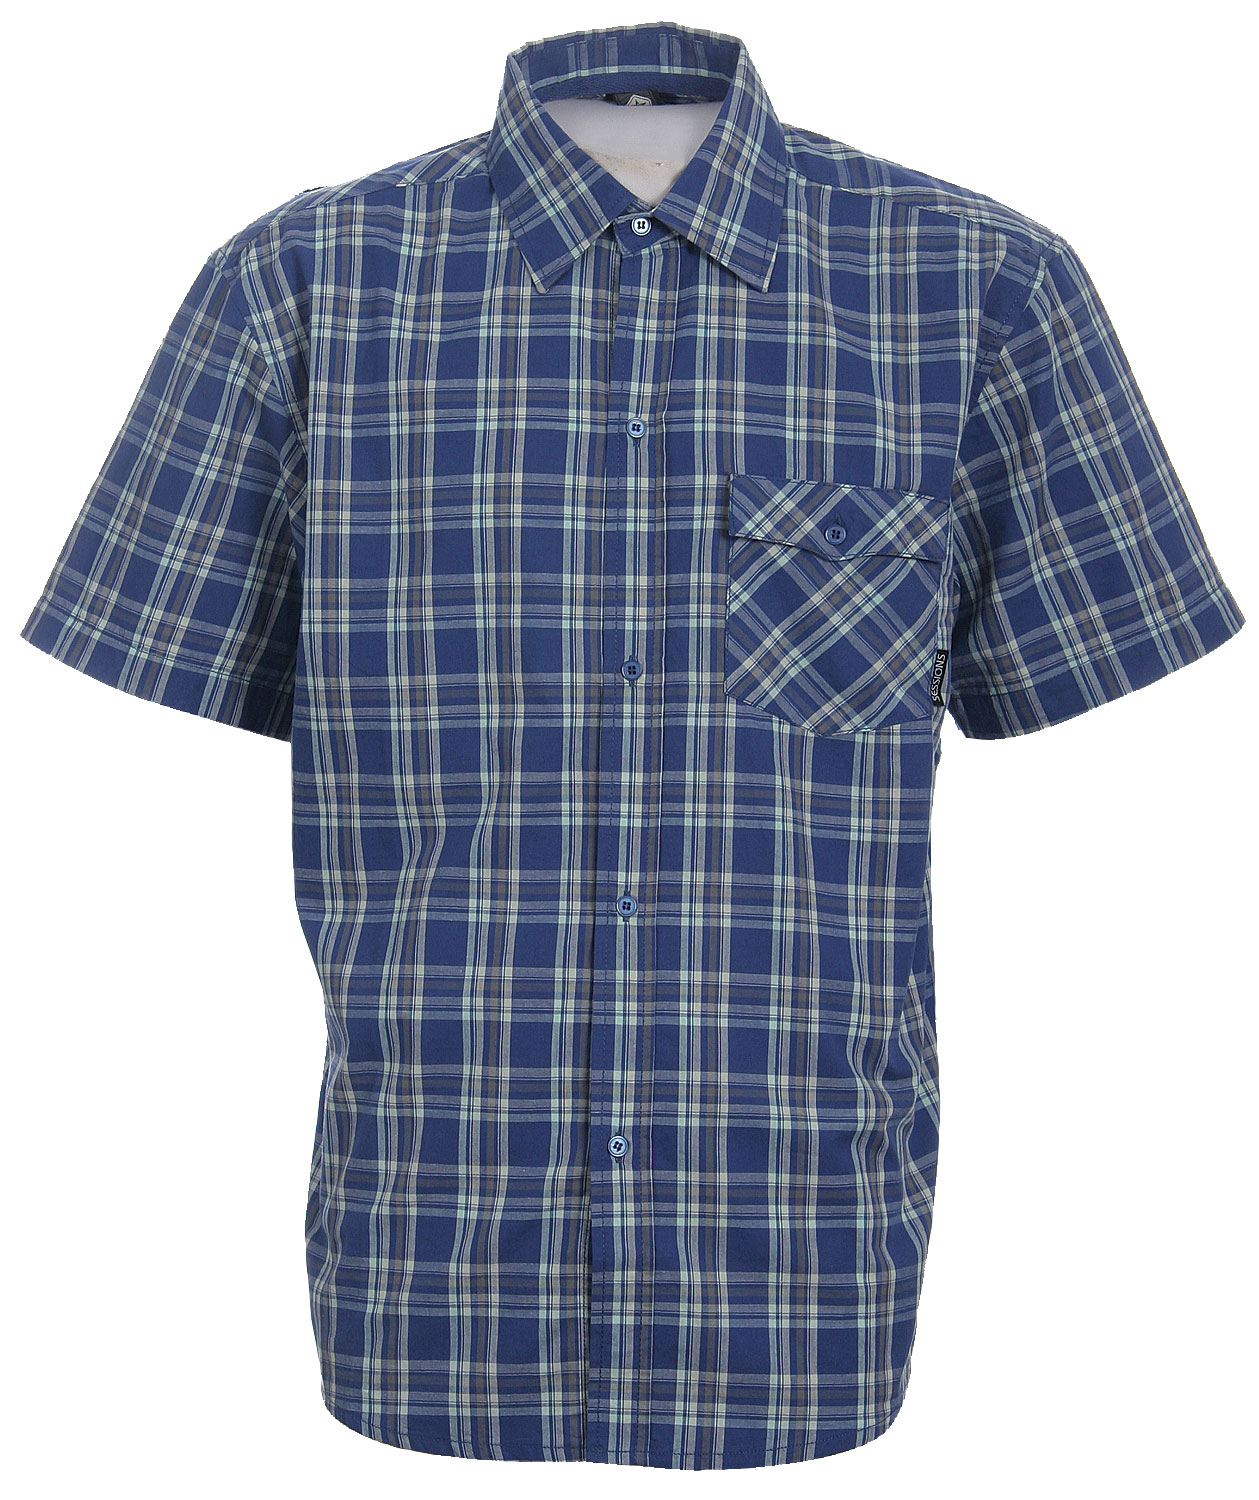 Look casual with the Sessions Haiden S/S Shirt. You can never have too many casual shirts. They're perfect for everyday daytime wear. This shirt is made with 100% cotton, the perfect fabric to keep you feeling comfortable all throughout the day. Its plaid design adds a nice rural touch to the outfit. Add this shirt to your wardrobe and rock it to your next casual event in style.Key Features of The Session Haiden S/S Shirt: 100% Cotton S/S Cotton 4-Color Plaid Woven with Front Chest Pocket Screen Print Applique on Back Shoulder - $19.95